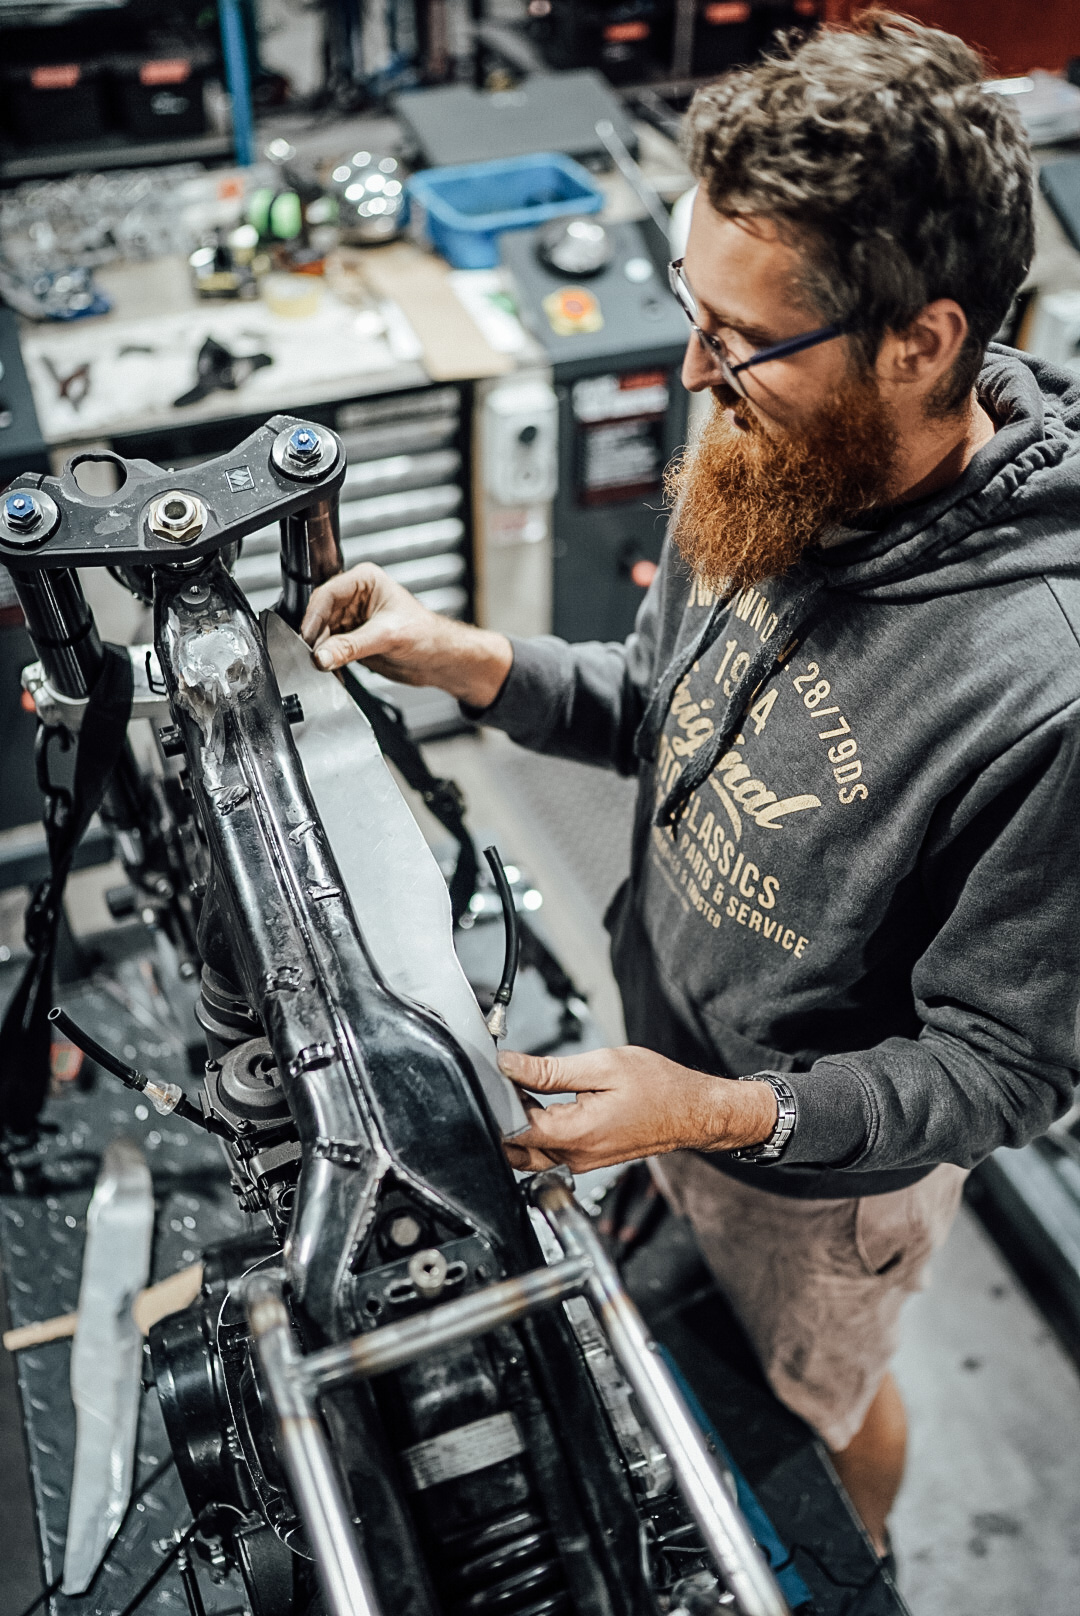 Kustom Kommune DIY Workshop XV750 Virago Cafe Racer Giveaway Build